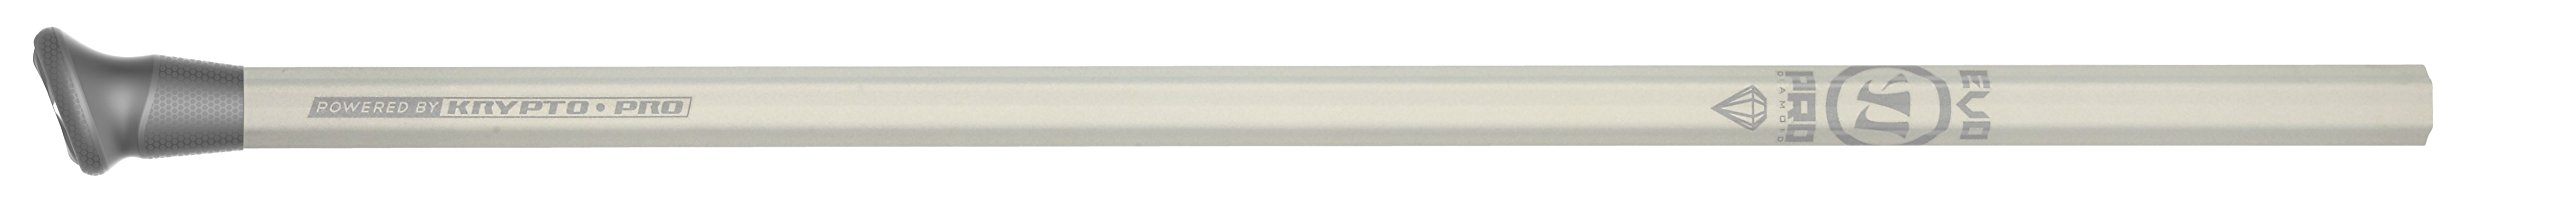 Warrior Evo Pro Diamond Defense Handle Lacrose Shaft, Silver